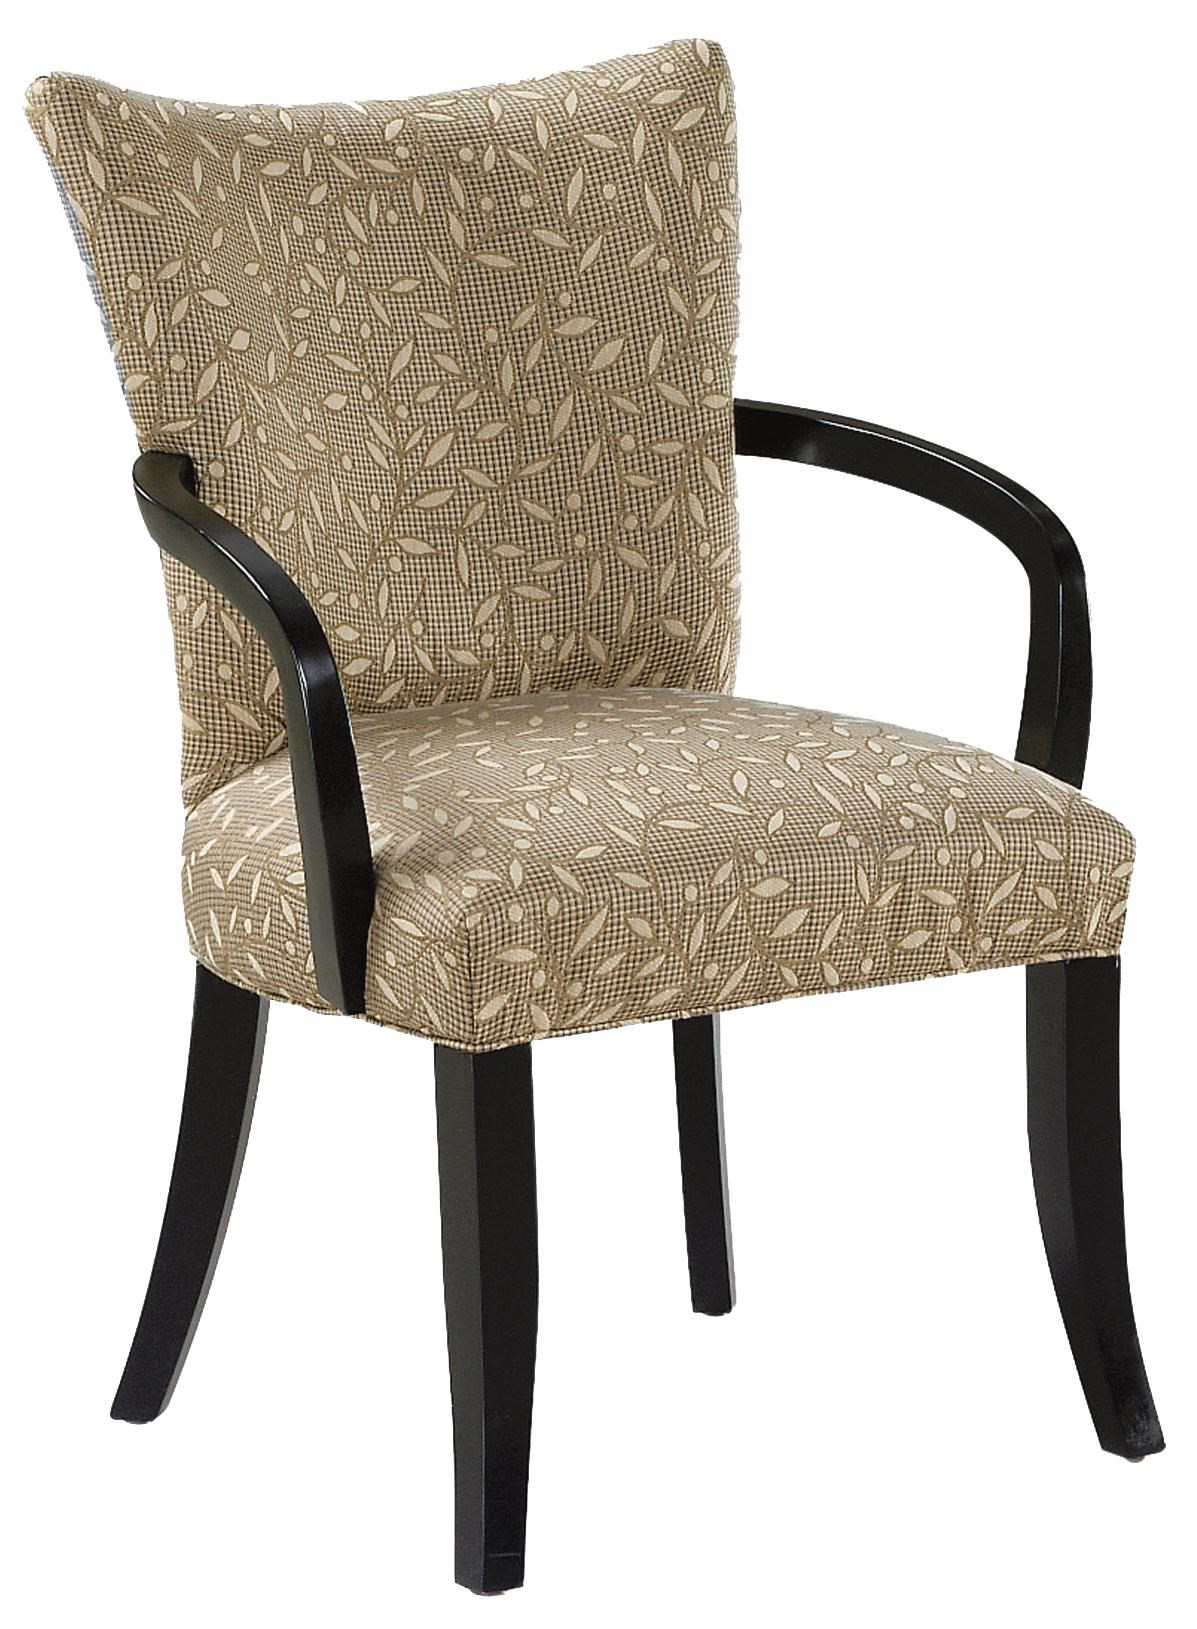 Fairfield Chairs Contemporary Accent Arm Chair Design